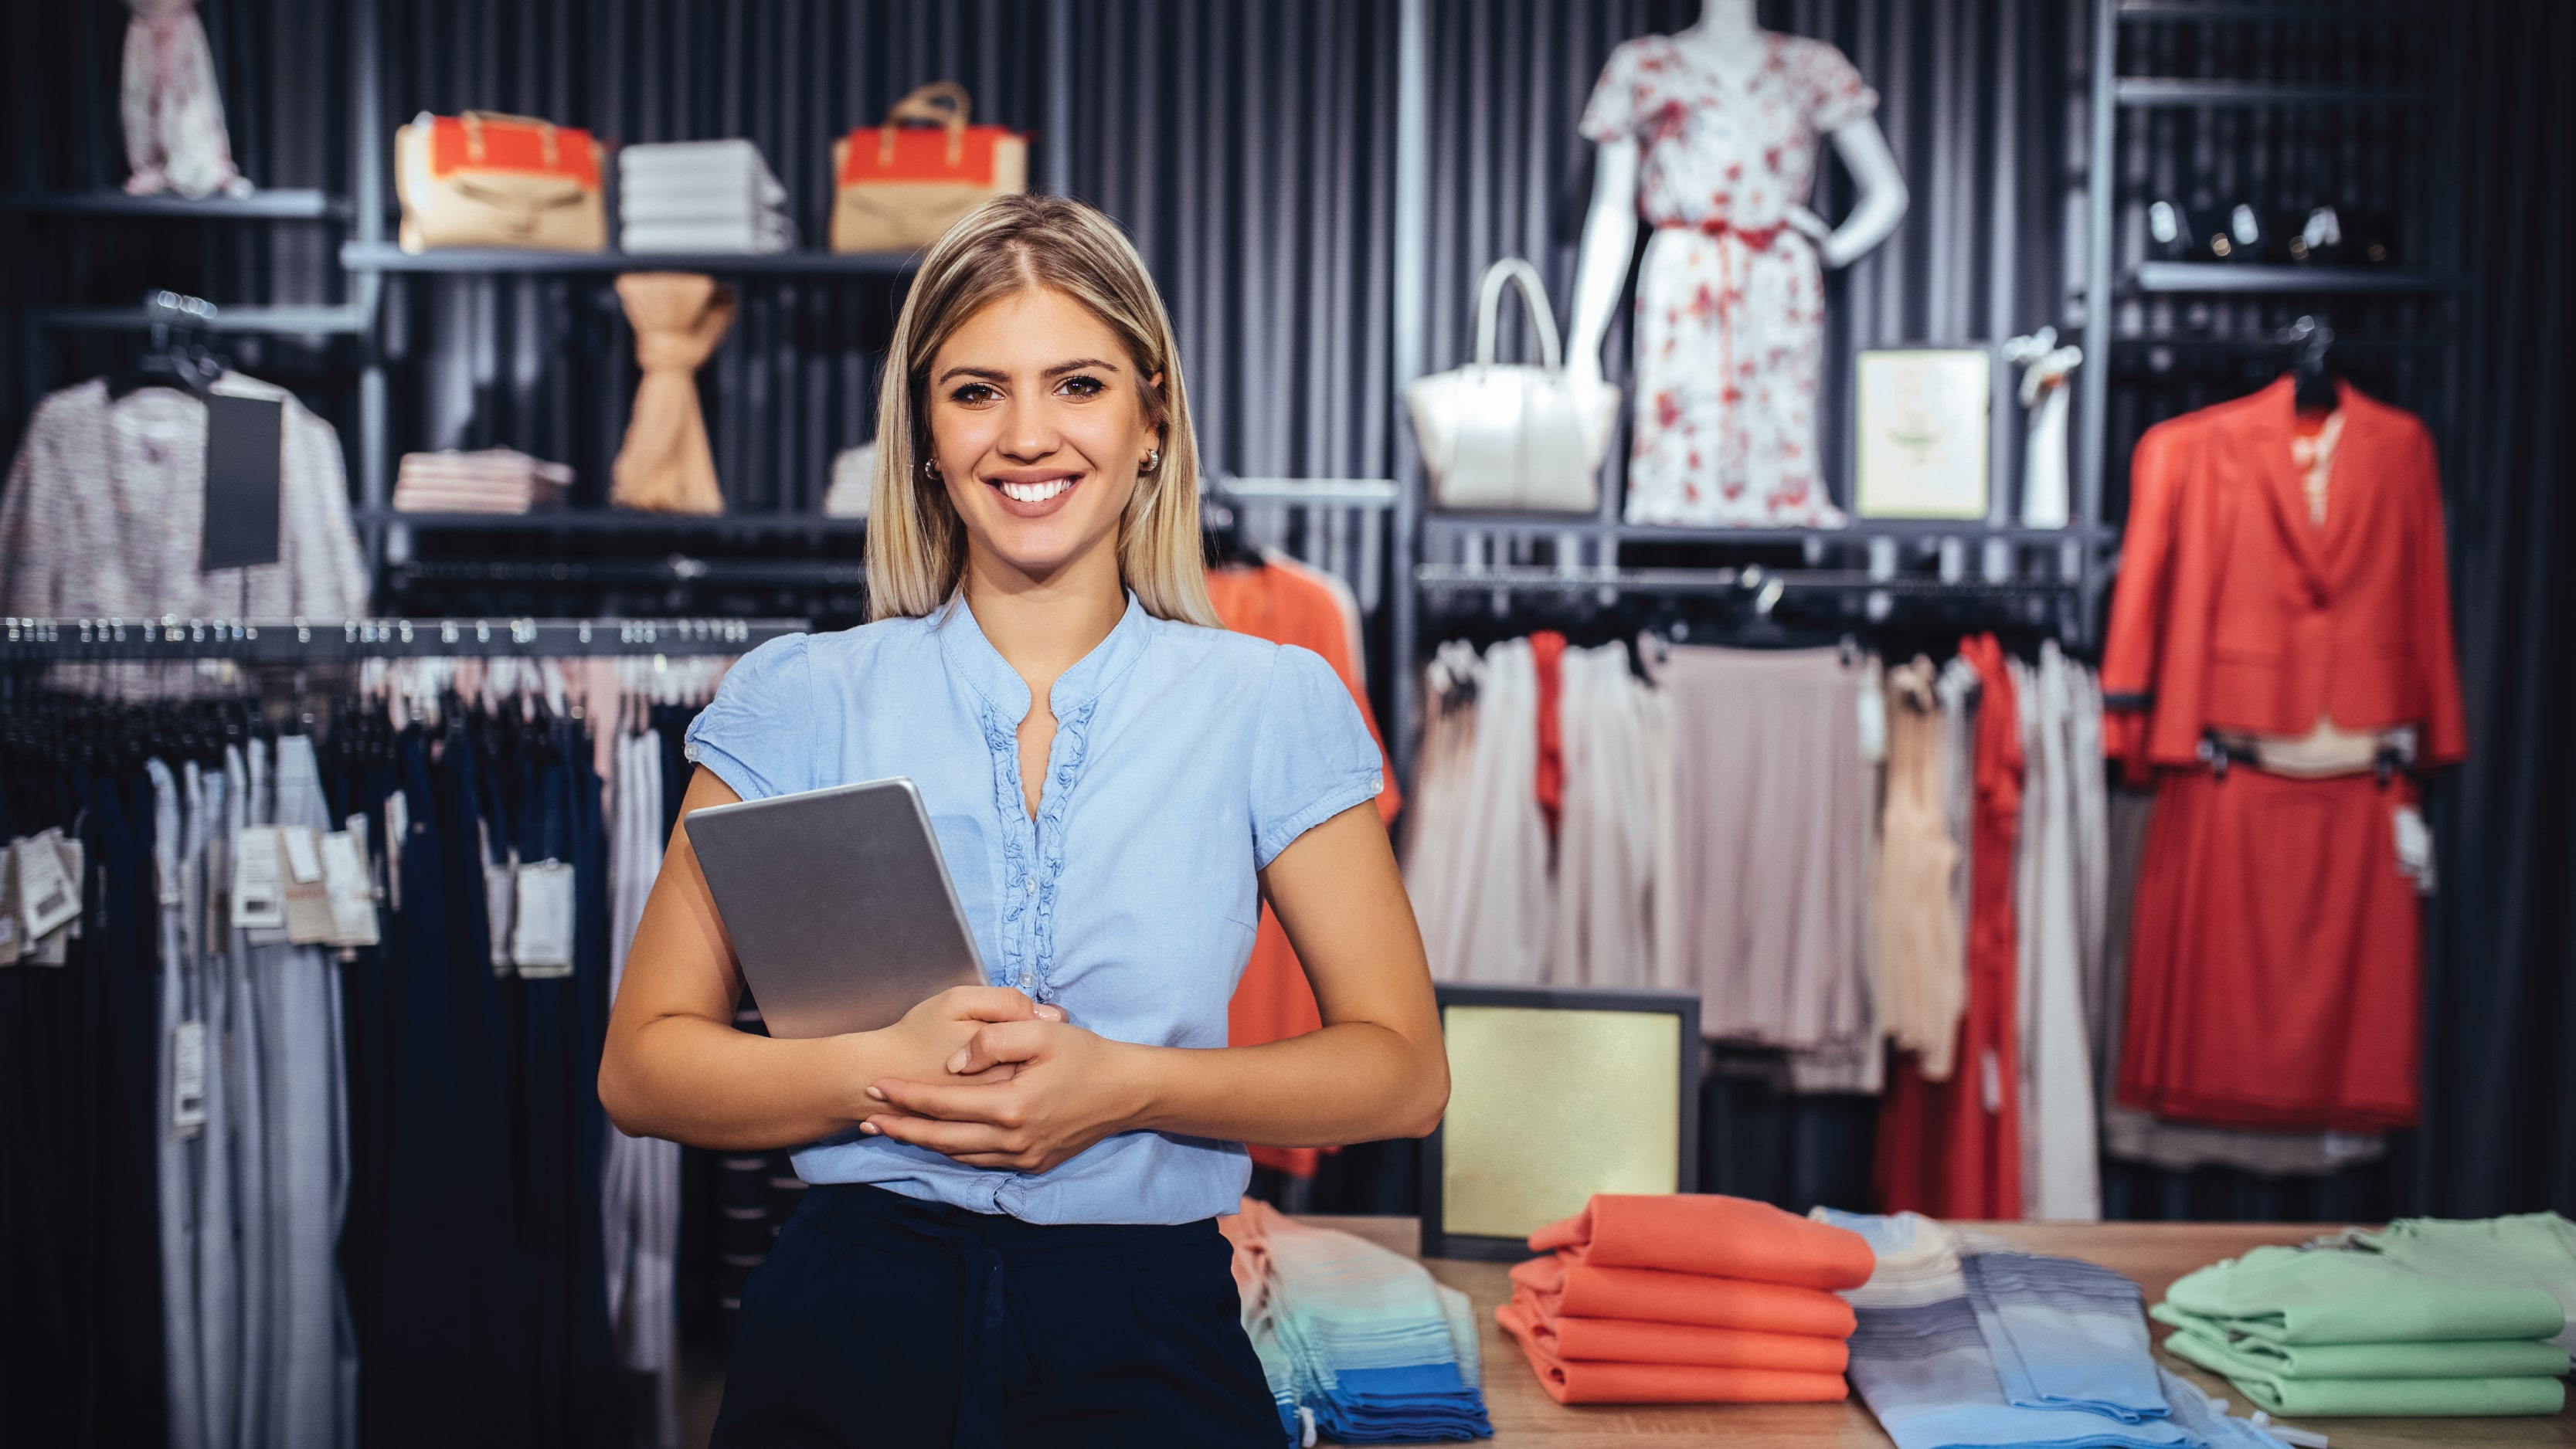 IoT In Retail: How The Internet Of Things Is Transforming The Retail Industry